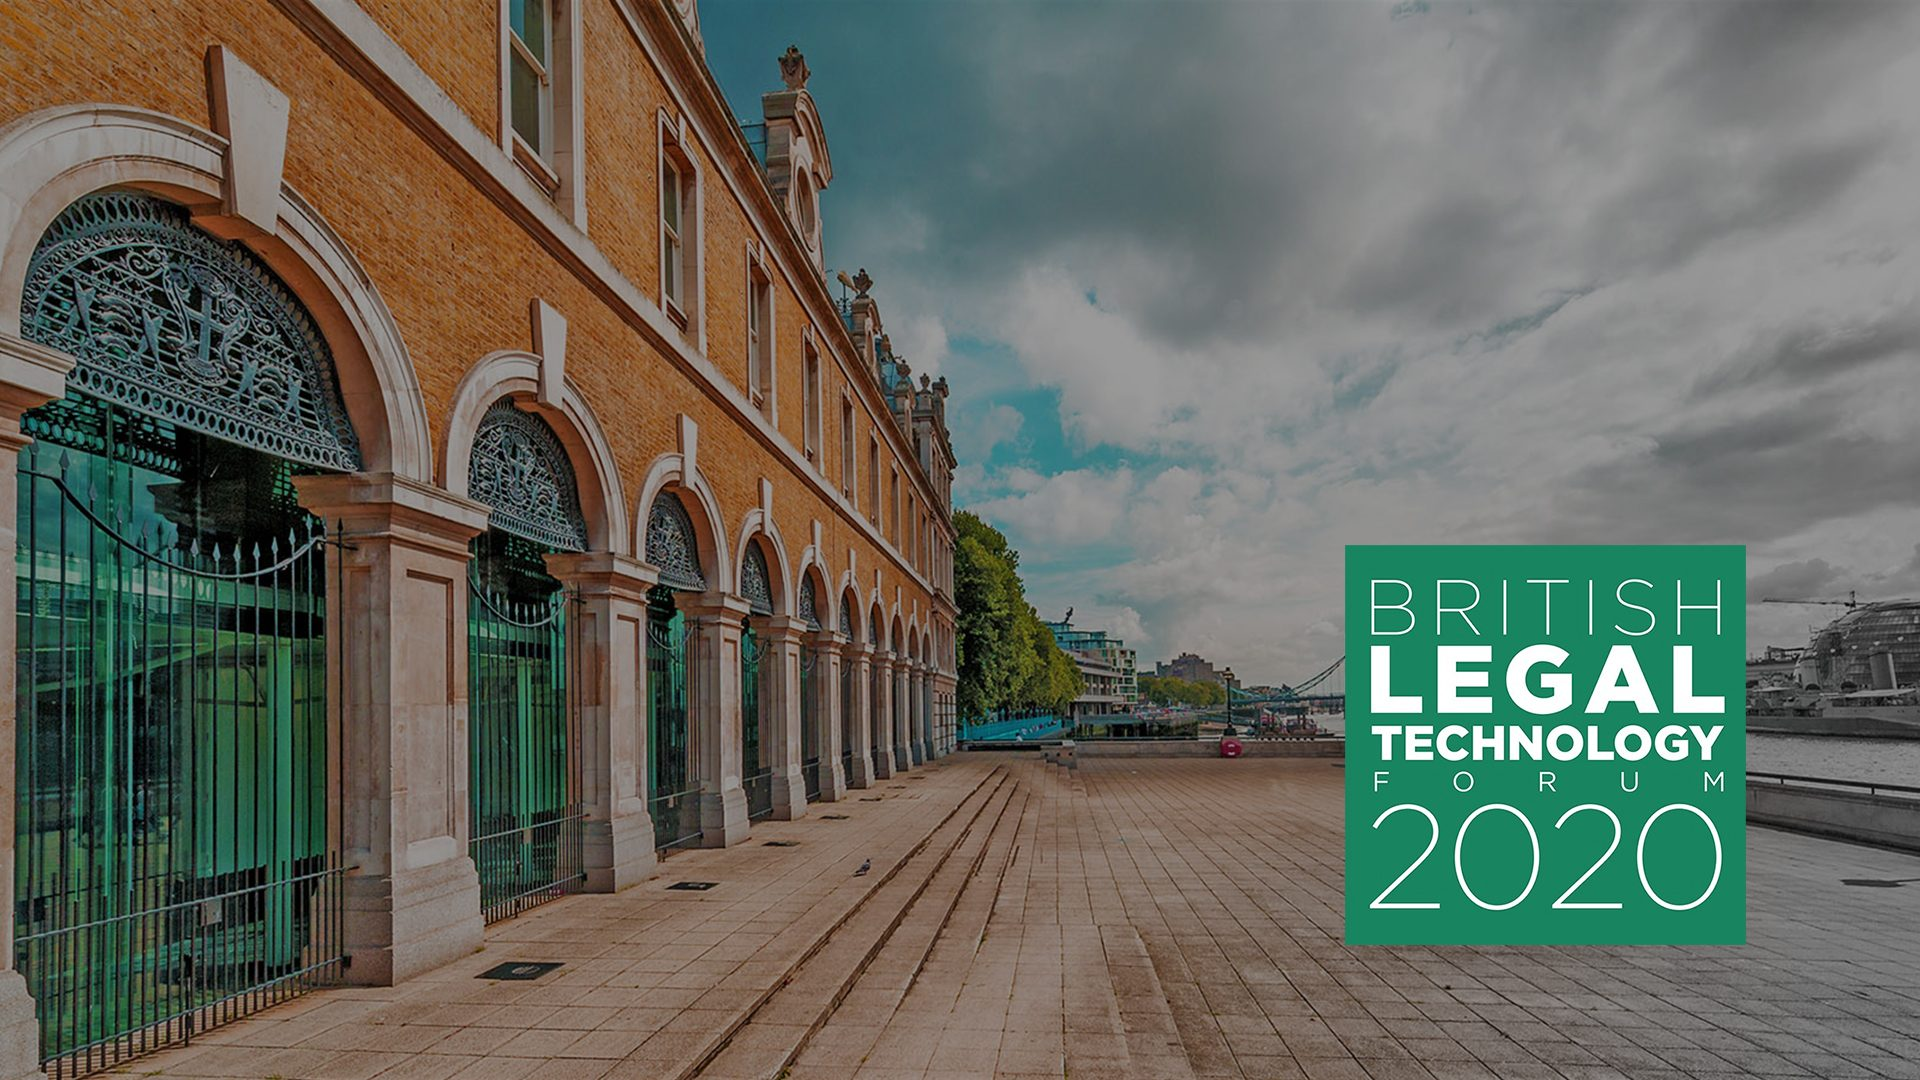 We're exhibiting at Europe's Largest Legal Technology Conference and Exhibition